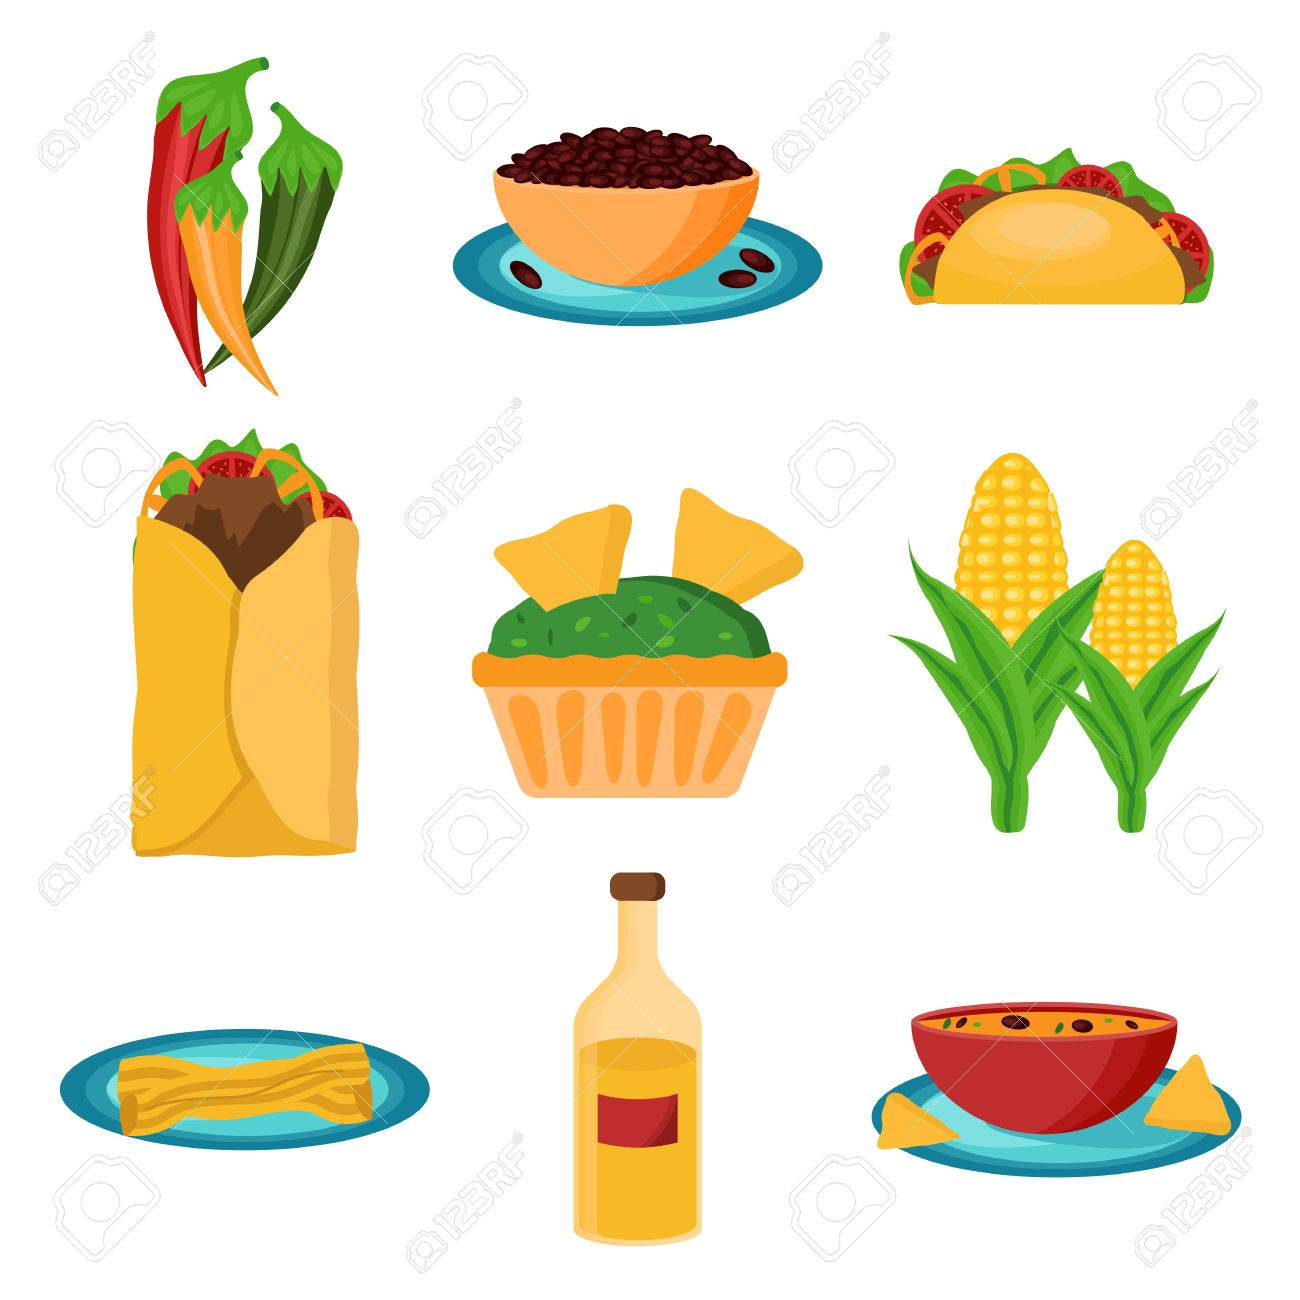 set of cartoon mexican food for your design royalty free cliparts rh 123rf com cartoon mexican food cartoon american football players